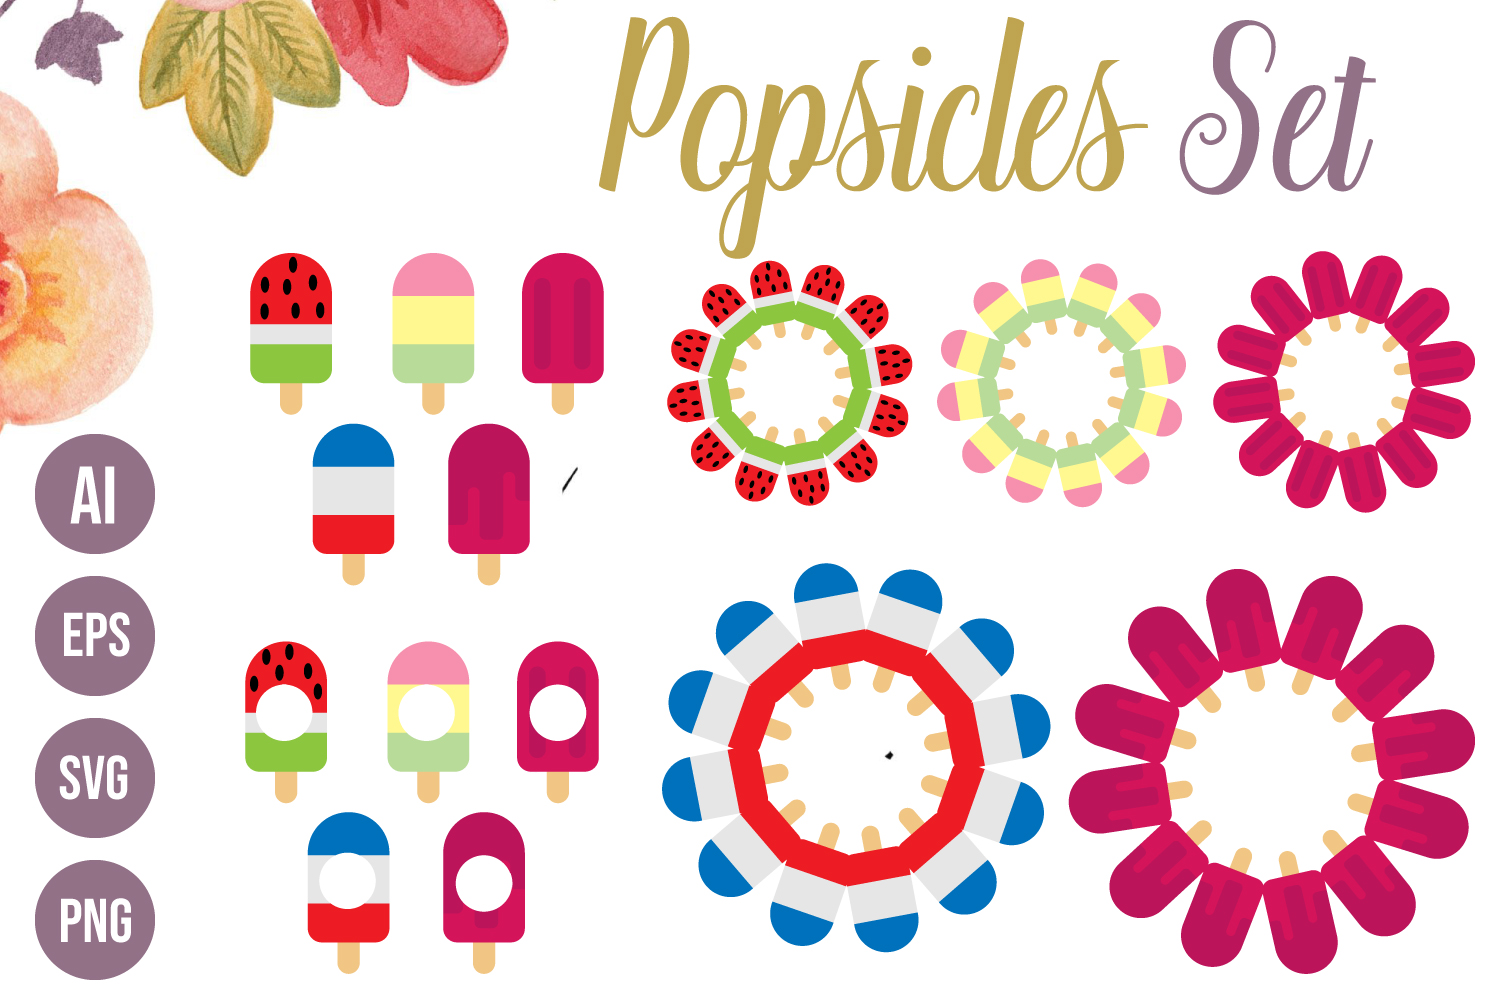 5 Popsicles SVG, Round Popsicles Floral Monograms AI, EPS example image 1